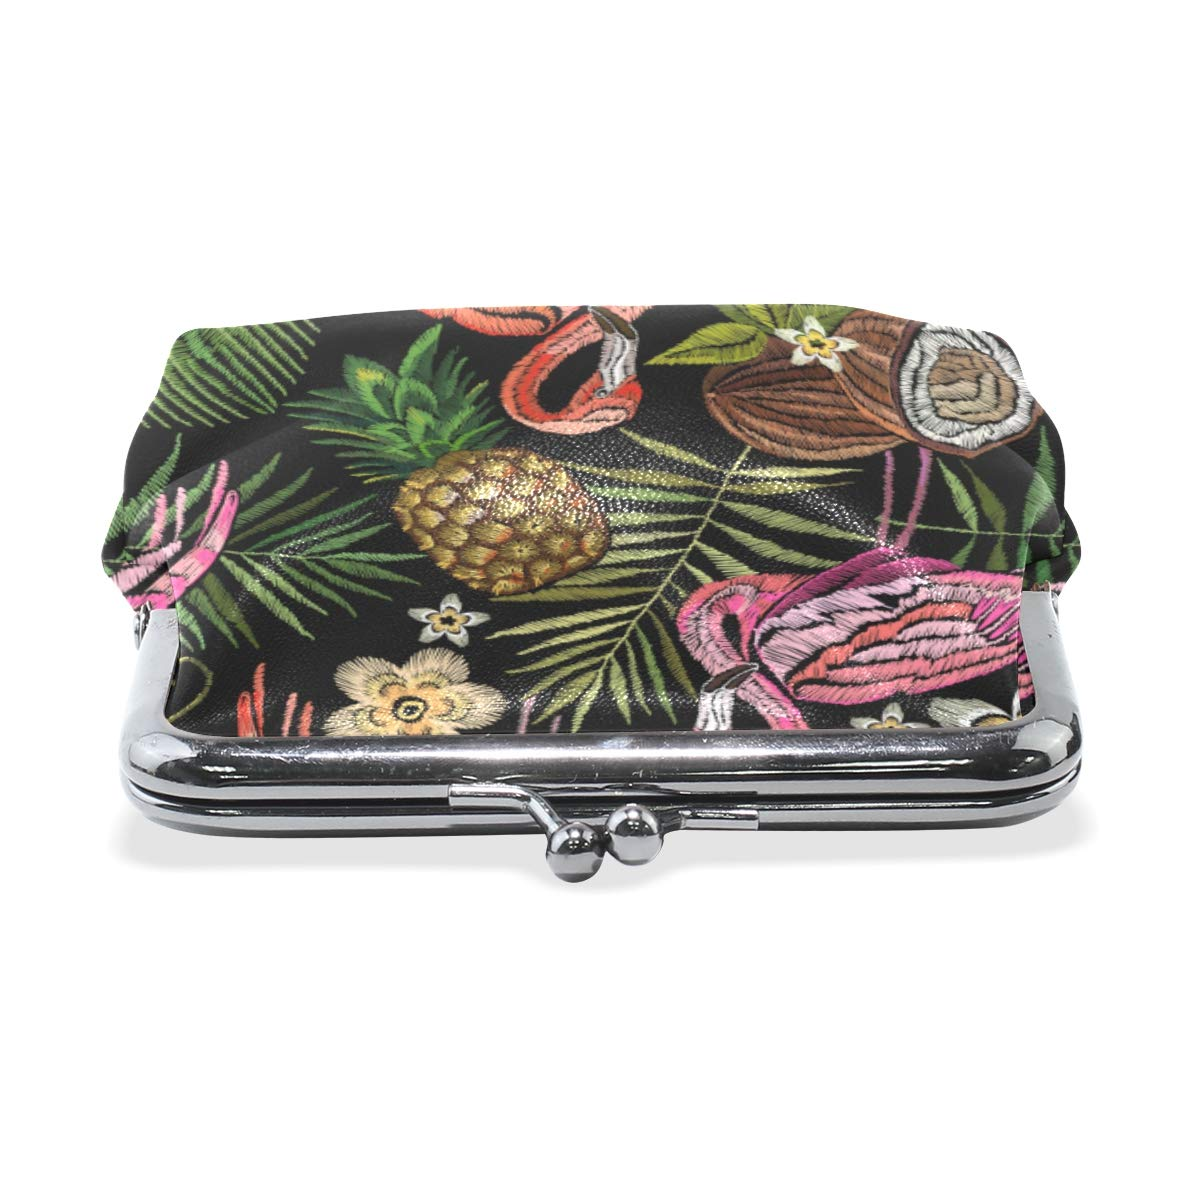 WIHVE Fashion Womens Coin Purse Embroidery Flamingo Tropical Palm Tree Leaves Flower Pineapple Coconut Vintage Pouch Mini Purse Wallets